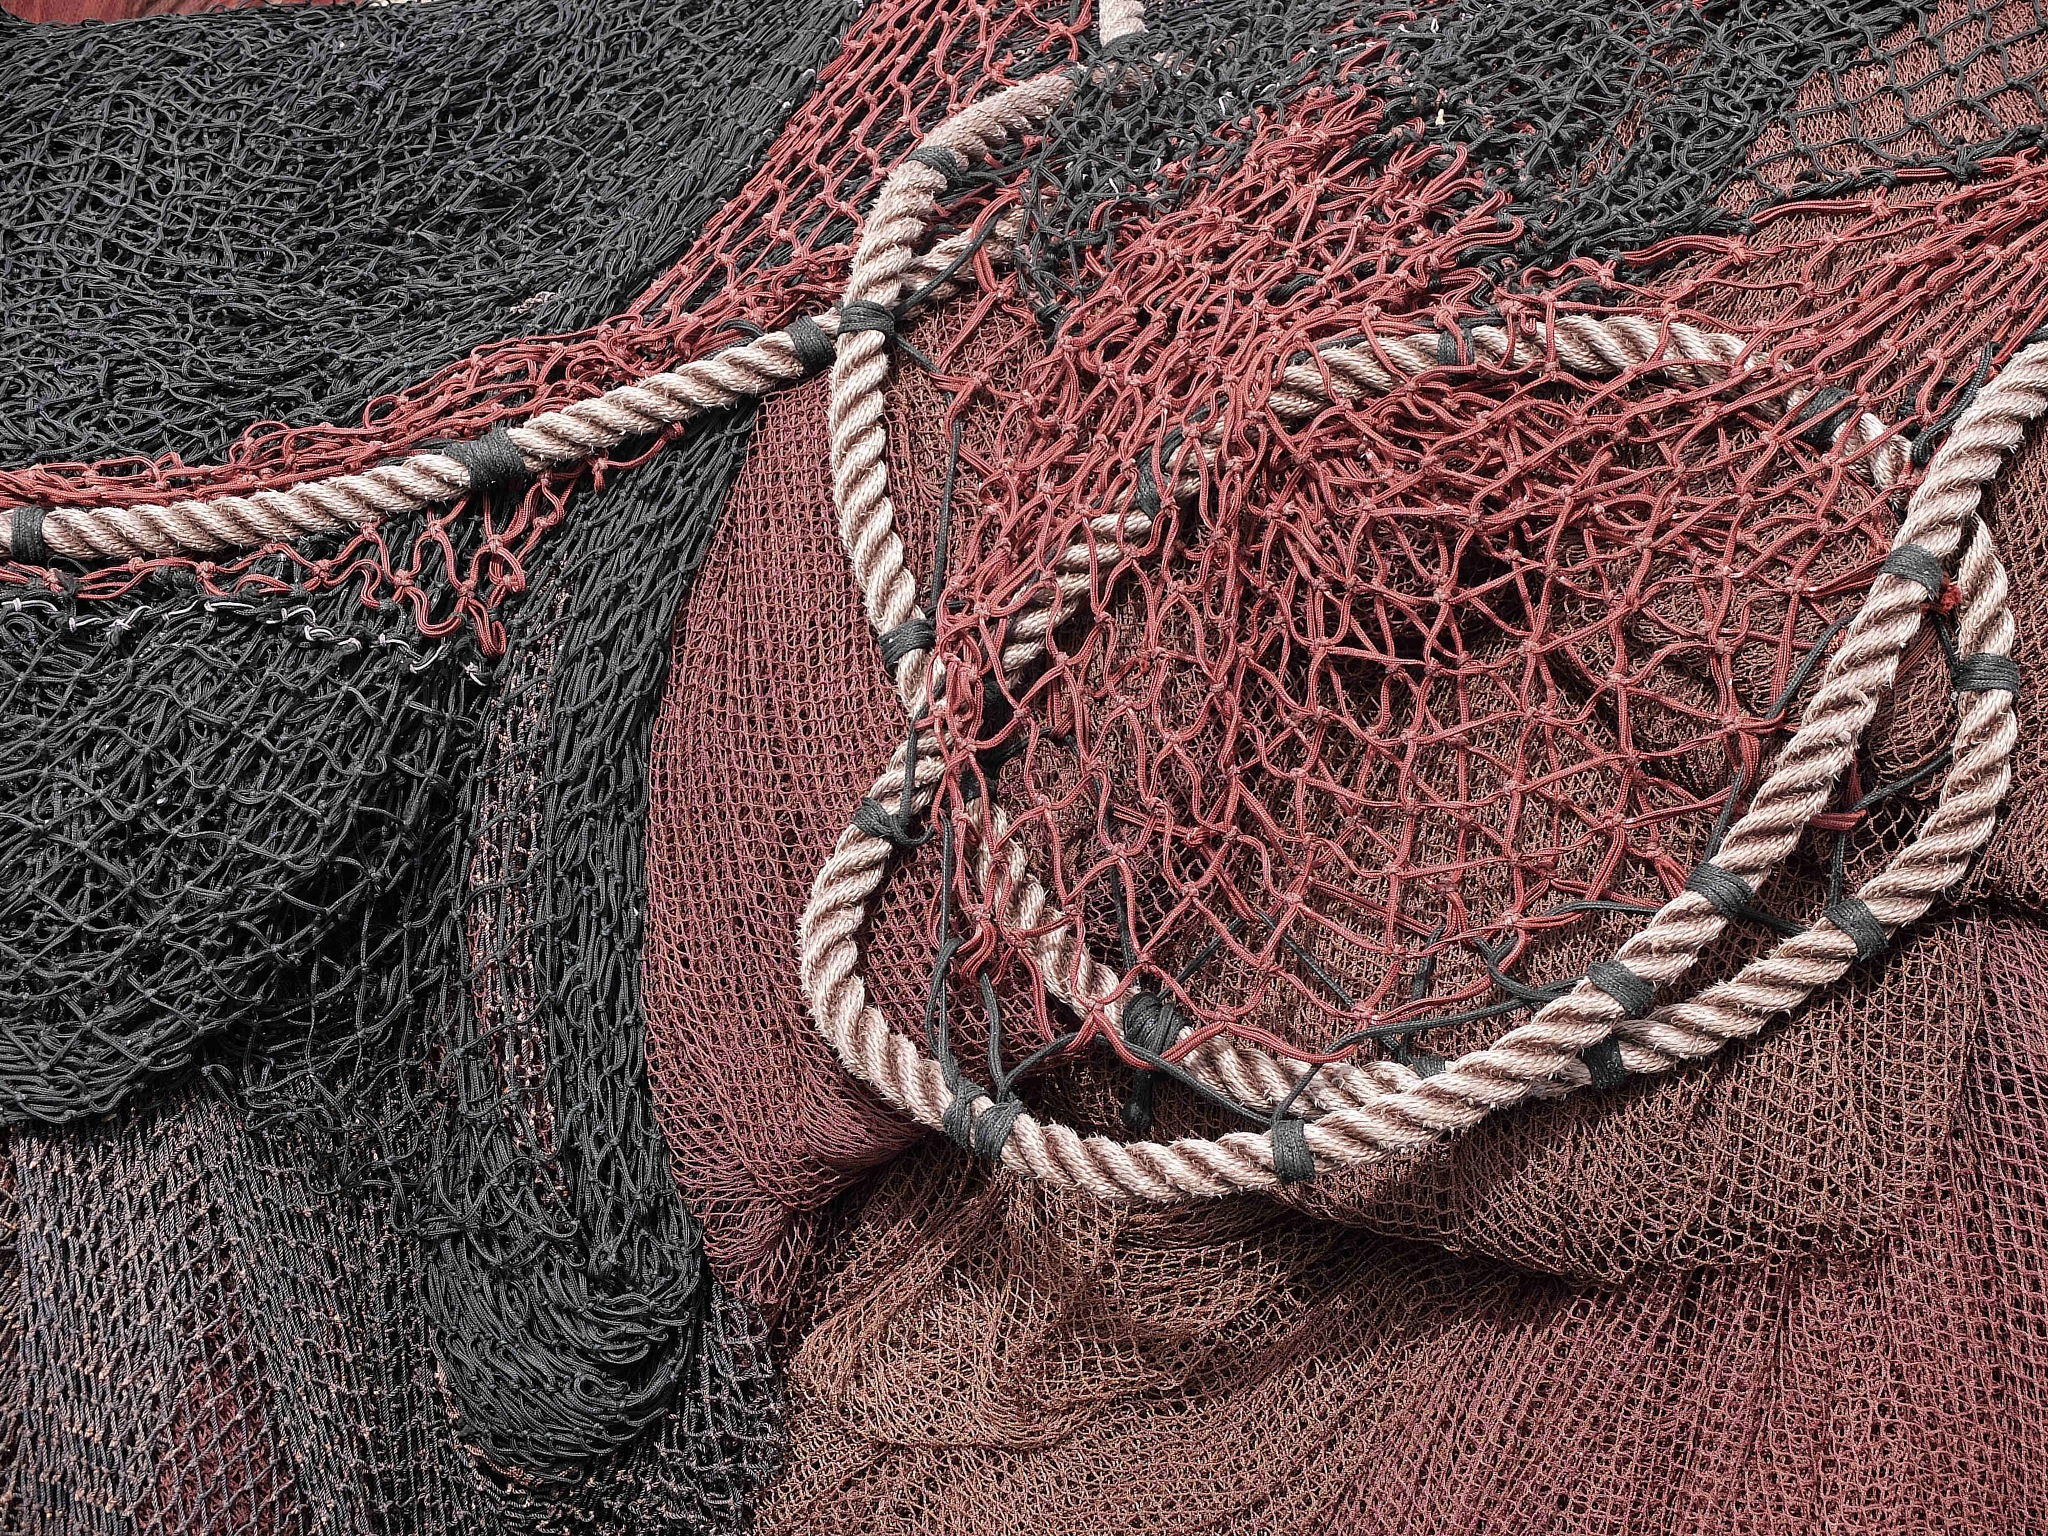 Fishing nets by Alberto Figueroa